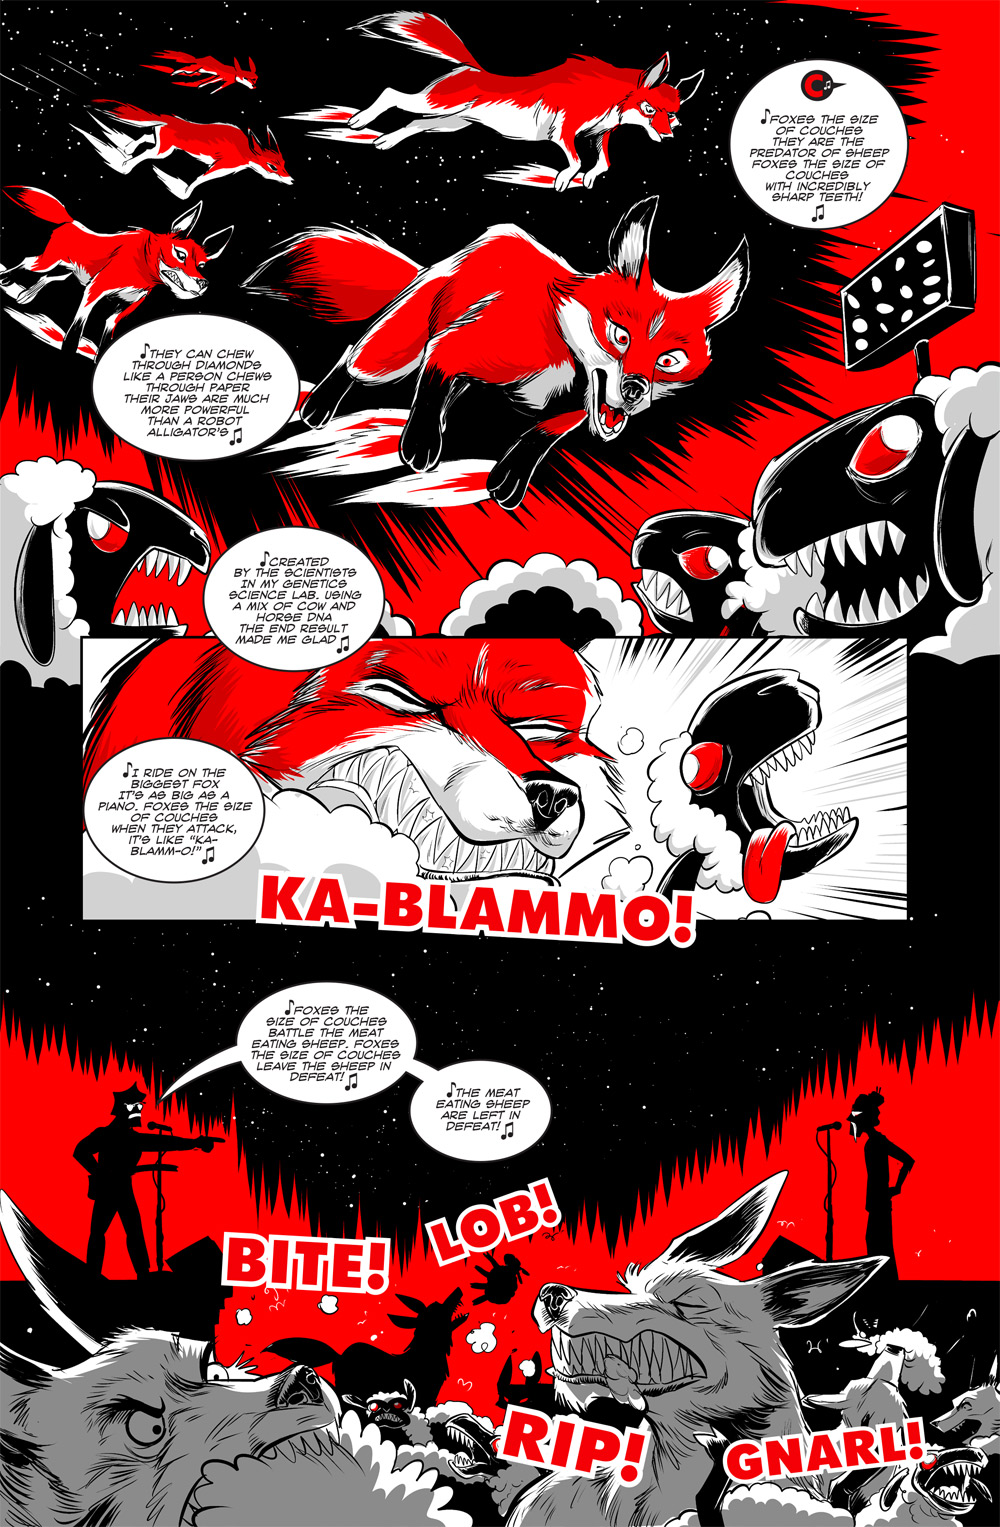 I want an audiobook of Dave reading bedtime stories in the Axe Cop voice.